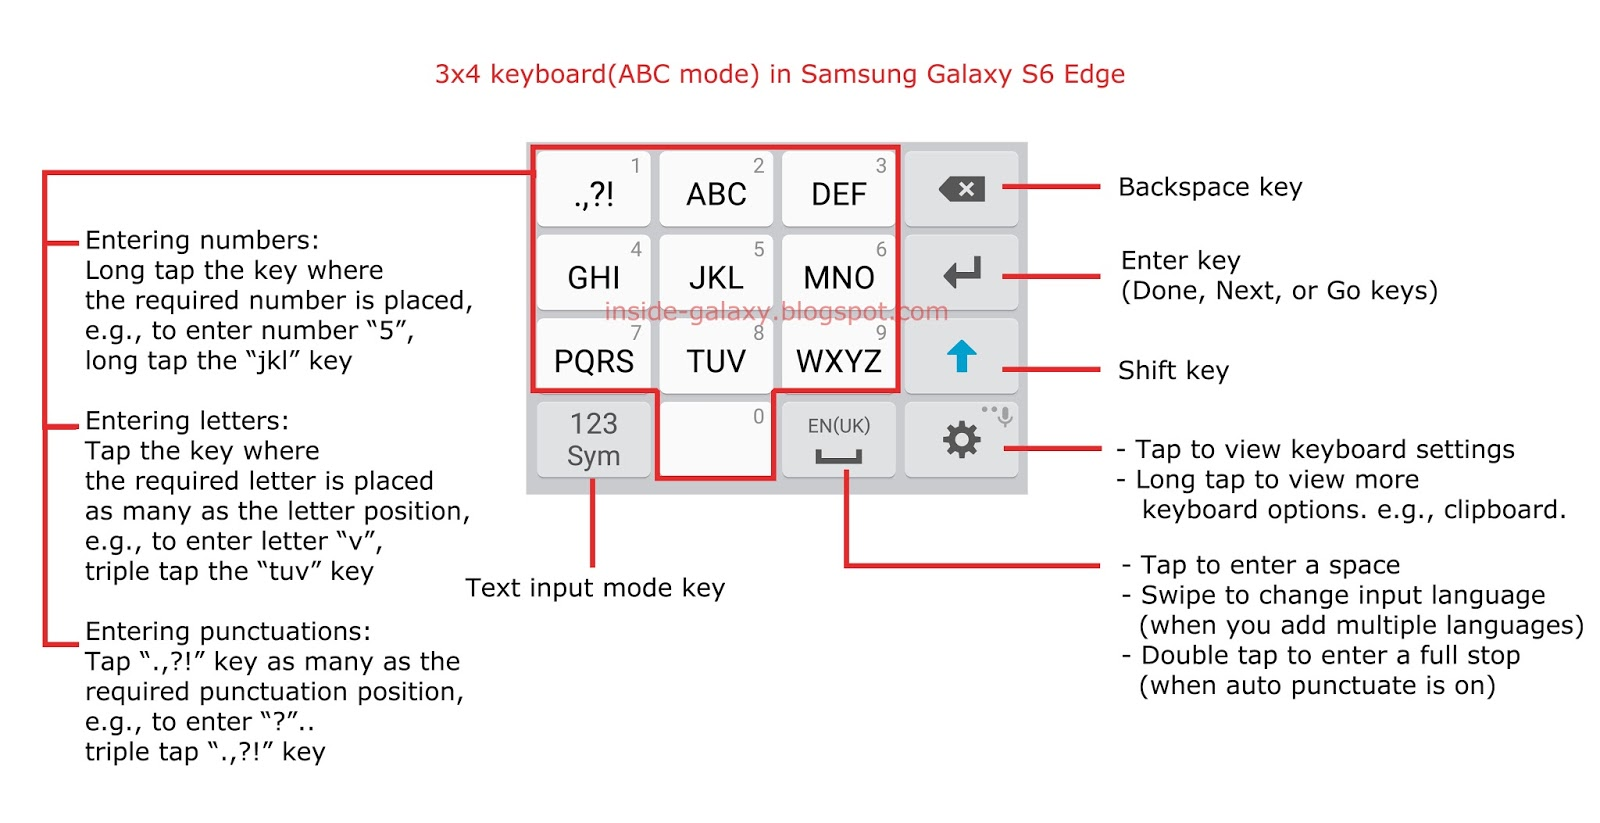 How To Use Samsung 3x4 Keyboard? The Abc Mode Will Be Displayed At The First